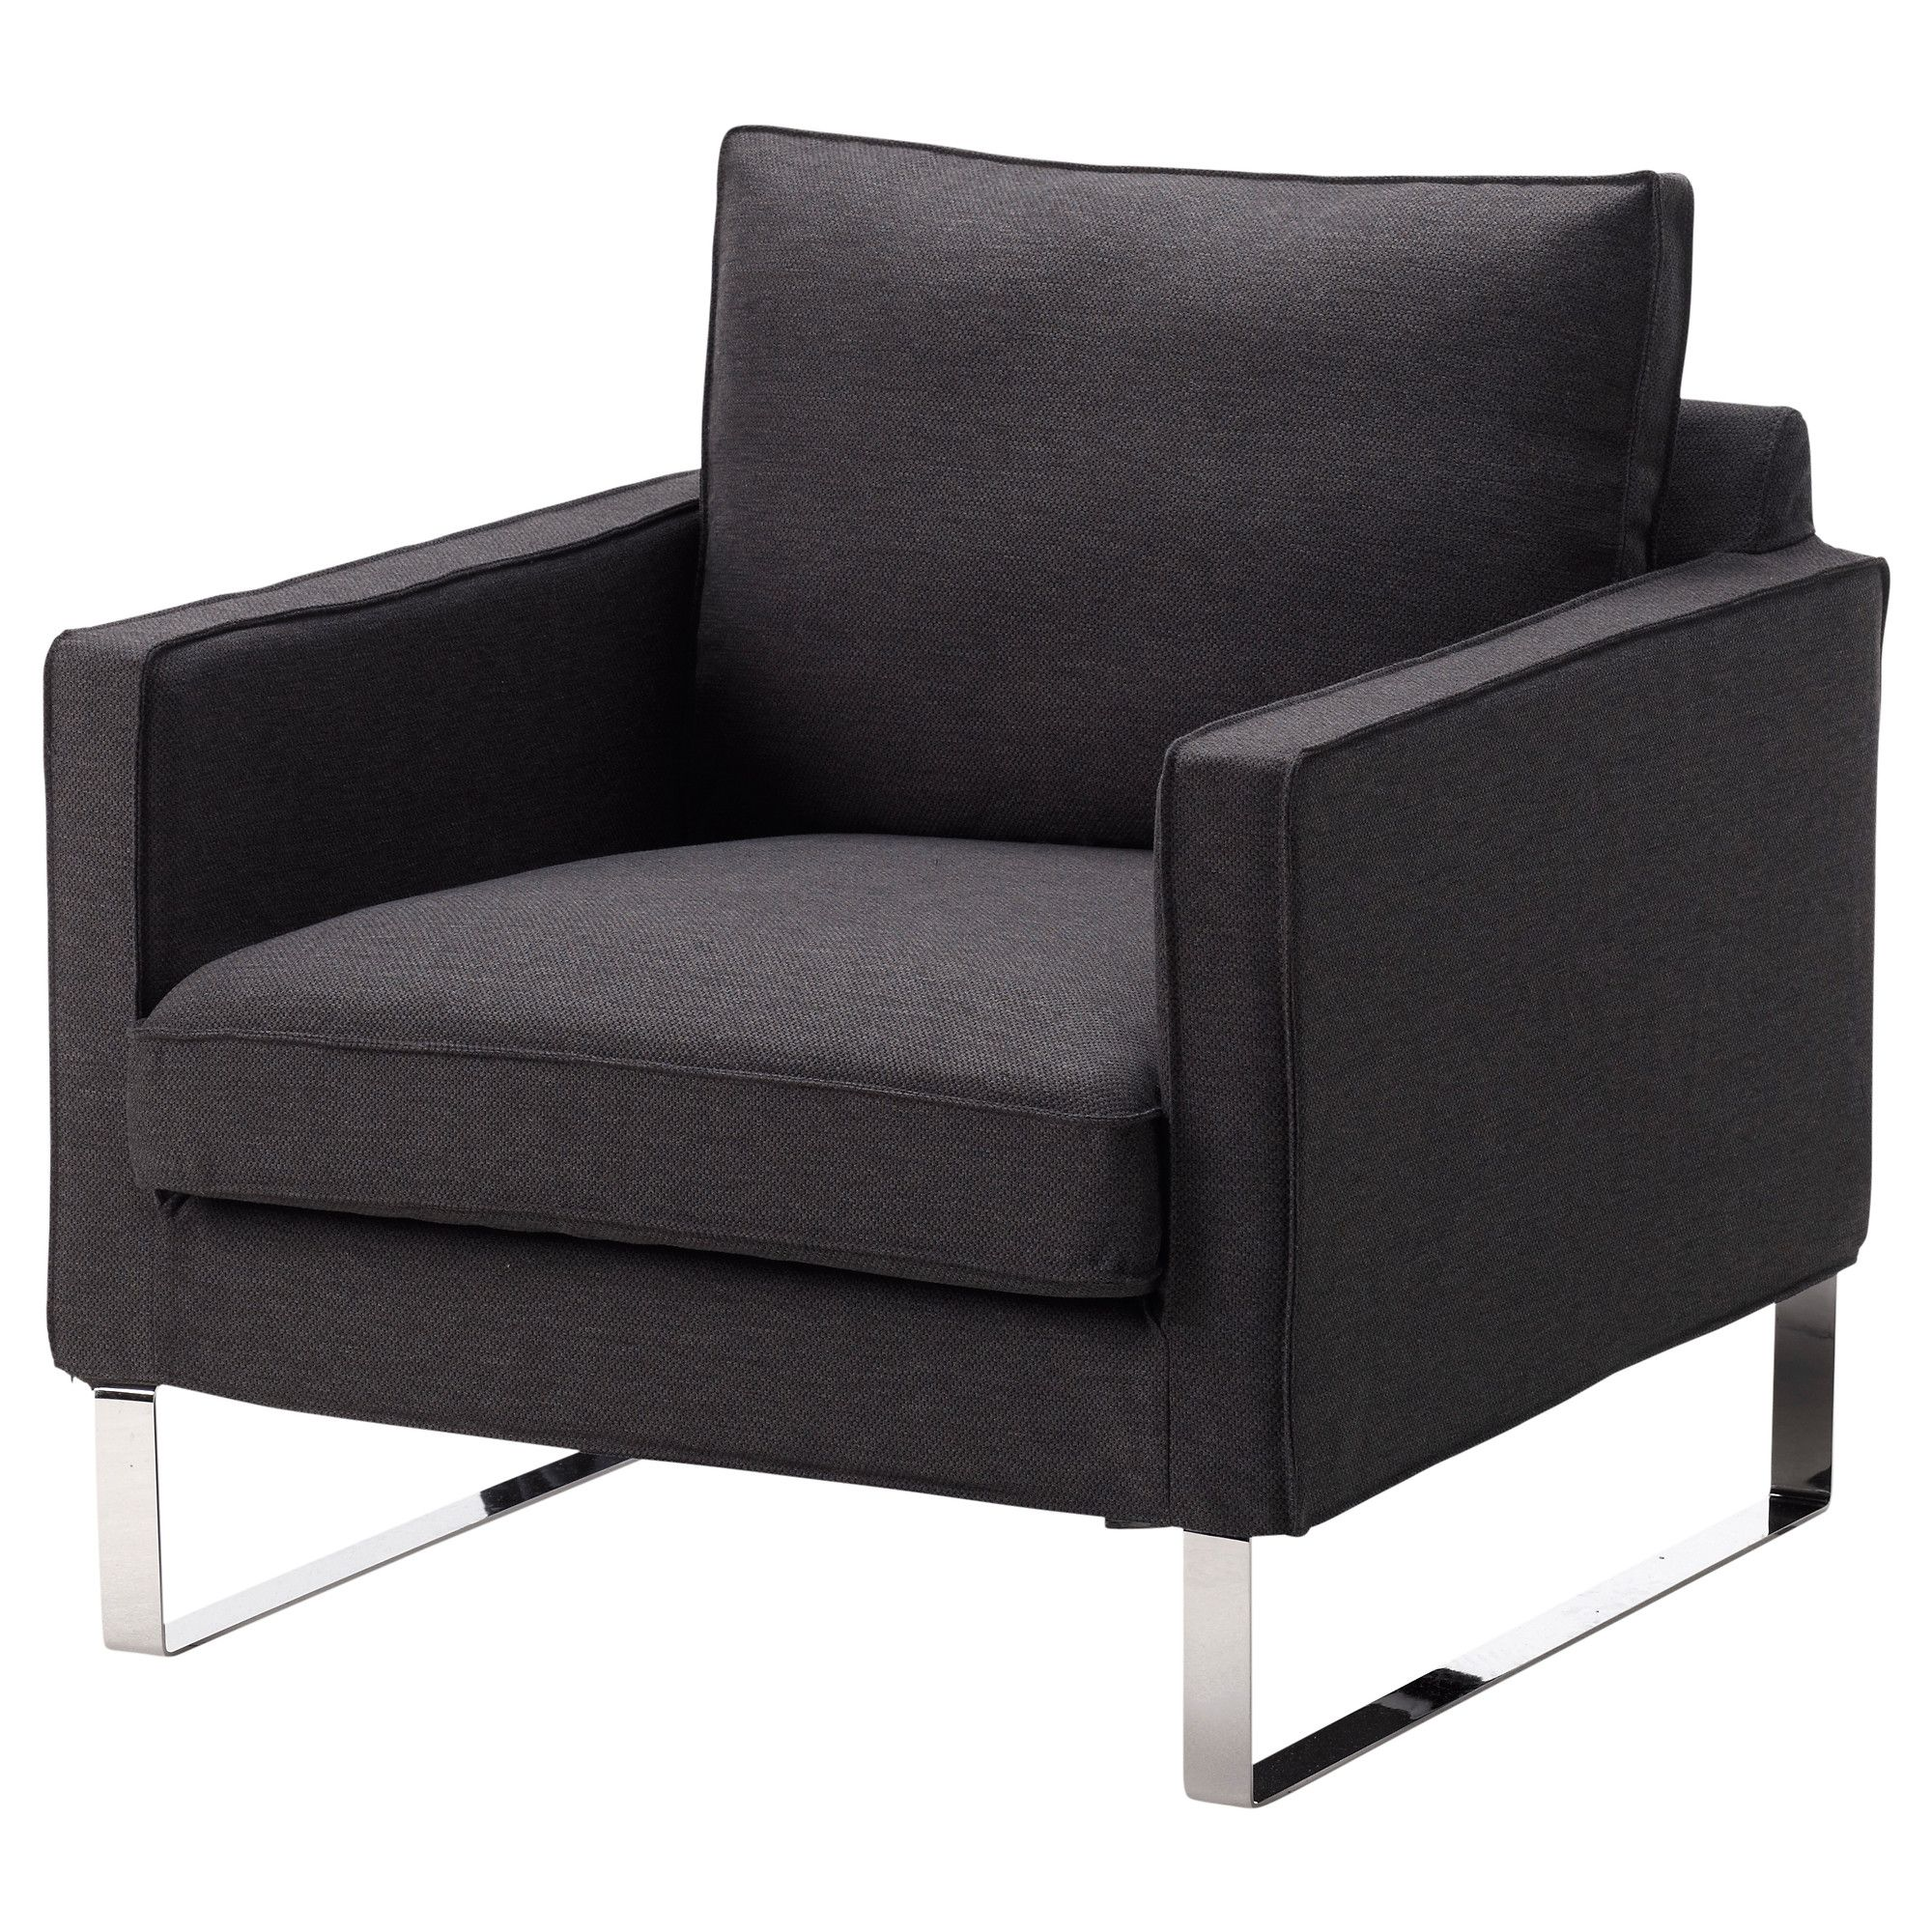 IKEA US - Furniture and Home Furnishings  Ikea armchair, Grey